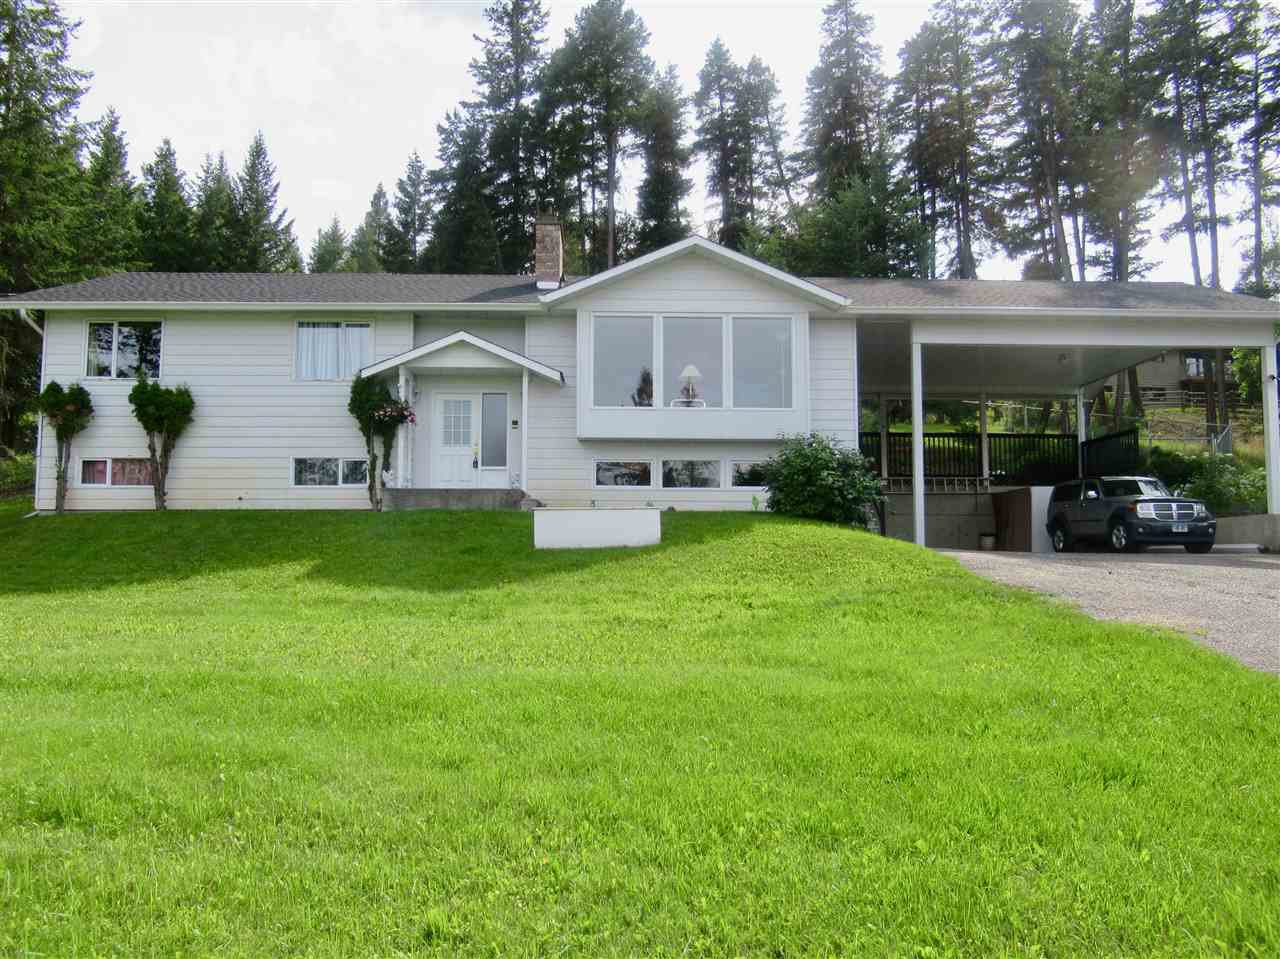 Photo 2: Photos: 607 ROBERTS Drive in Williams Lake: Esler/Dog Creek House for sale (Williams Lake (Zone 27))  : MLS®# R2391926